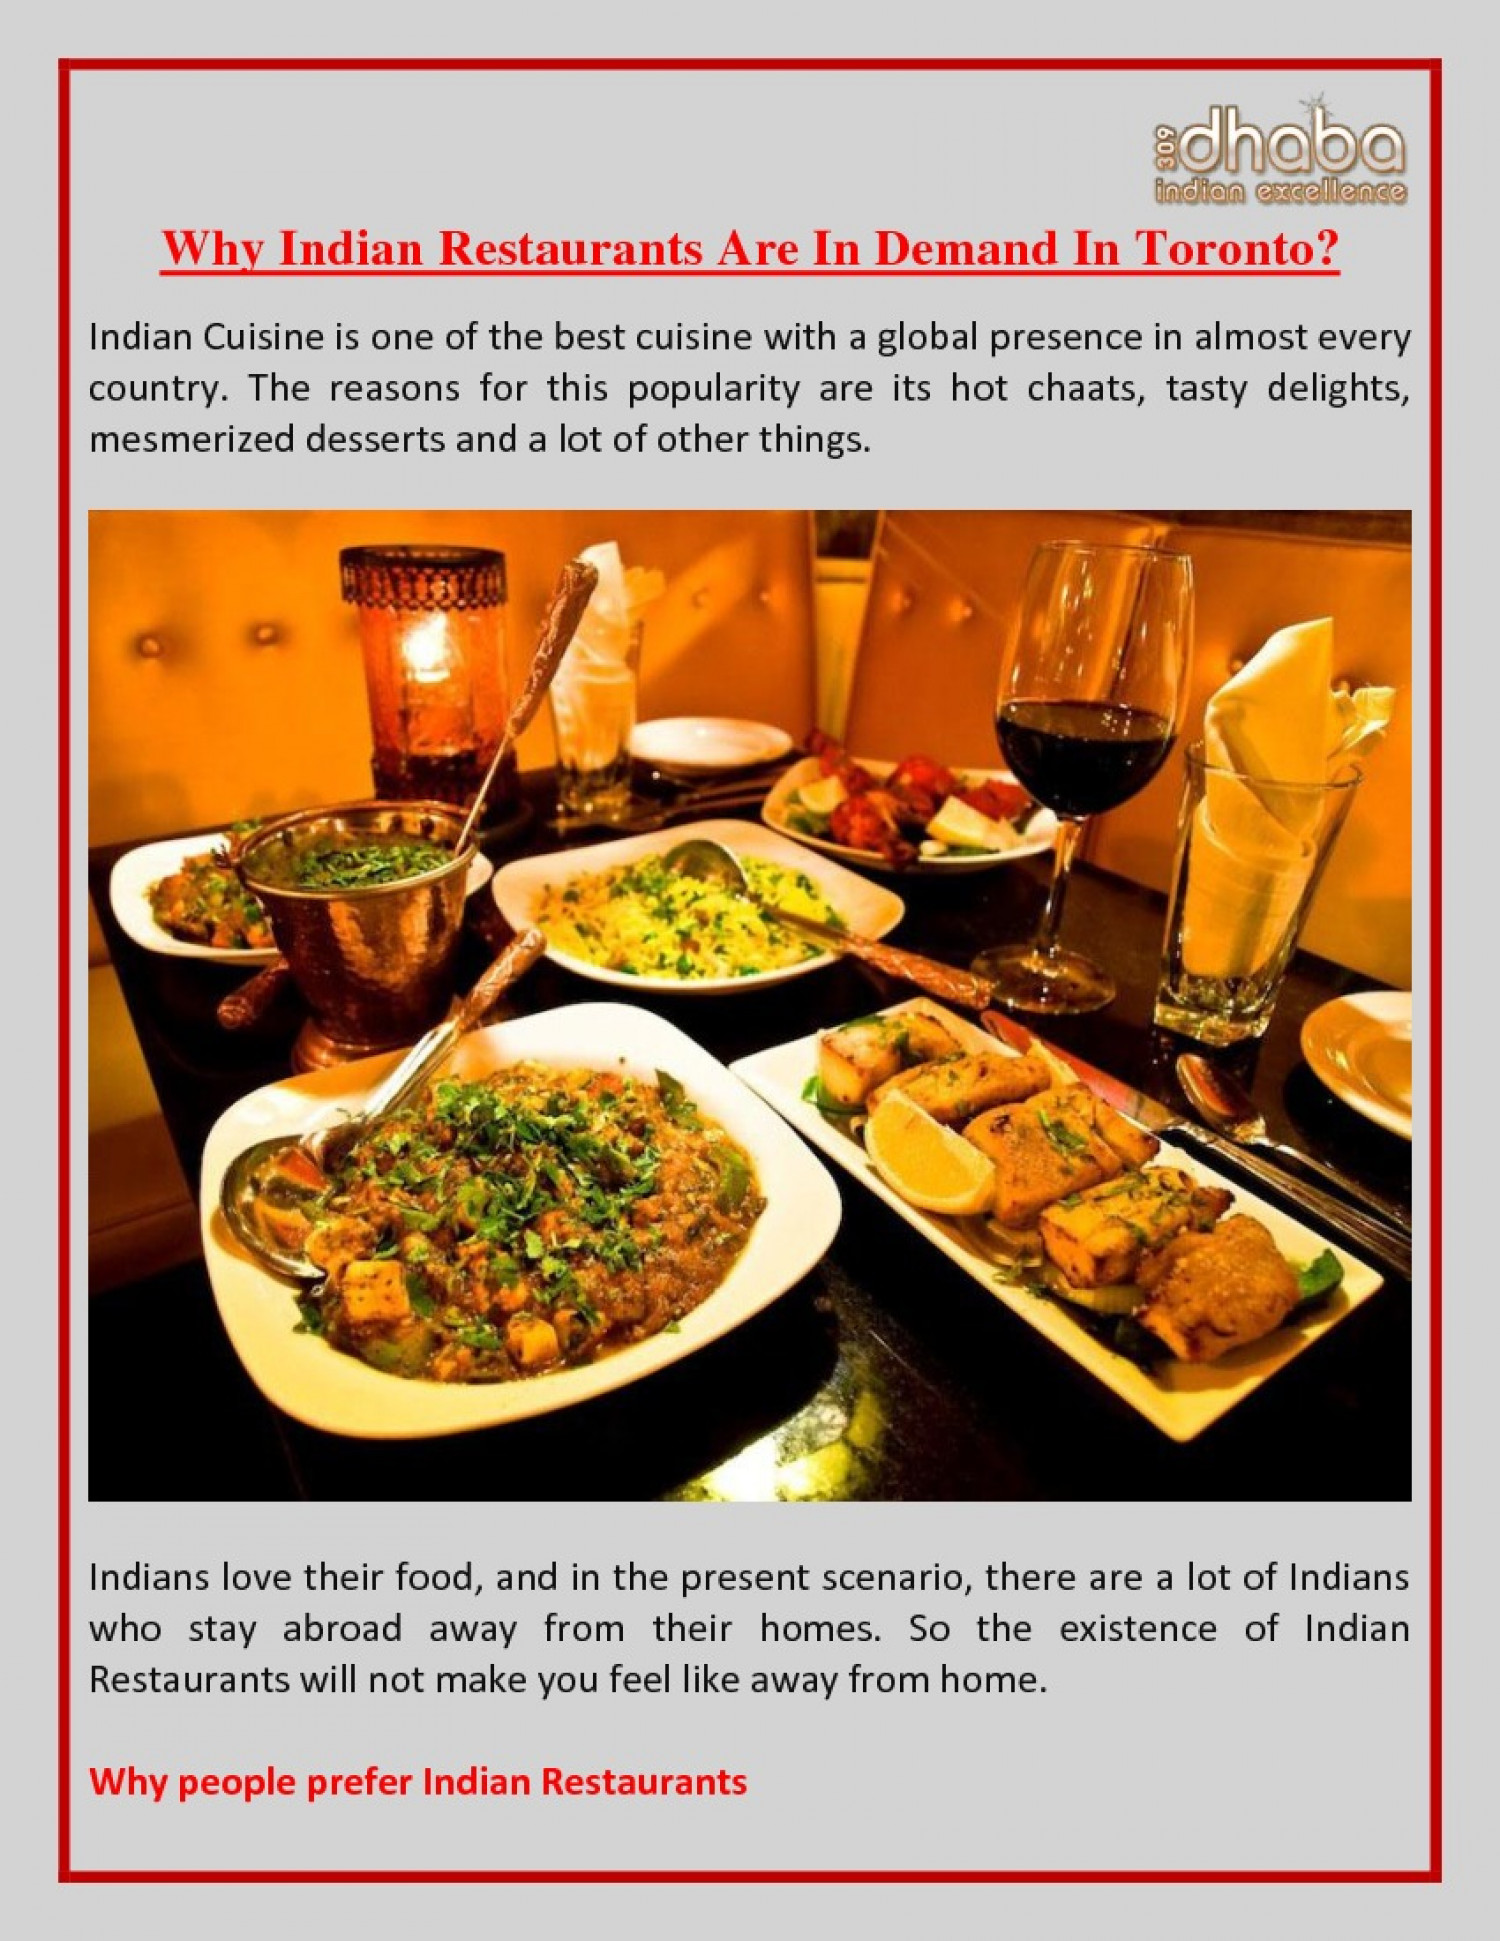 Why Indian Restaurants Are In Demand In Toronto? Infographic